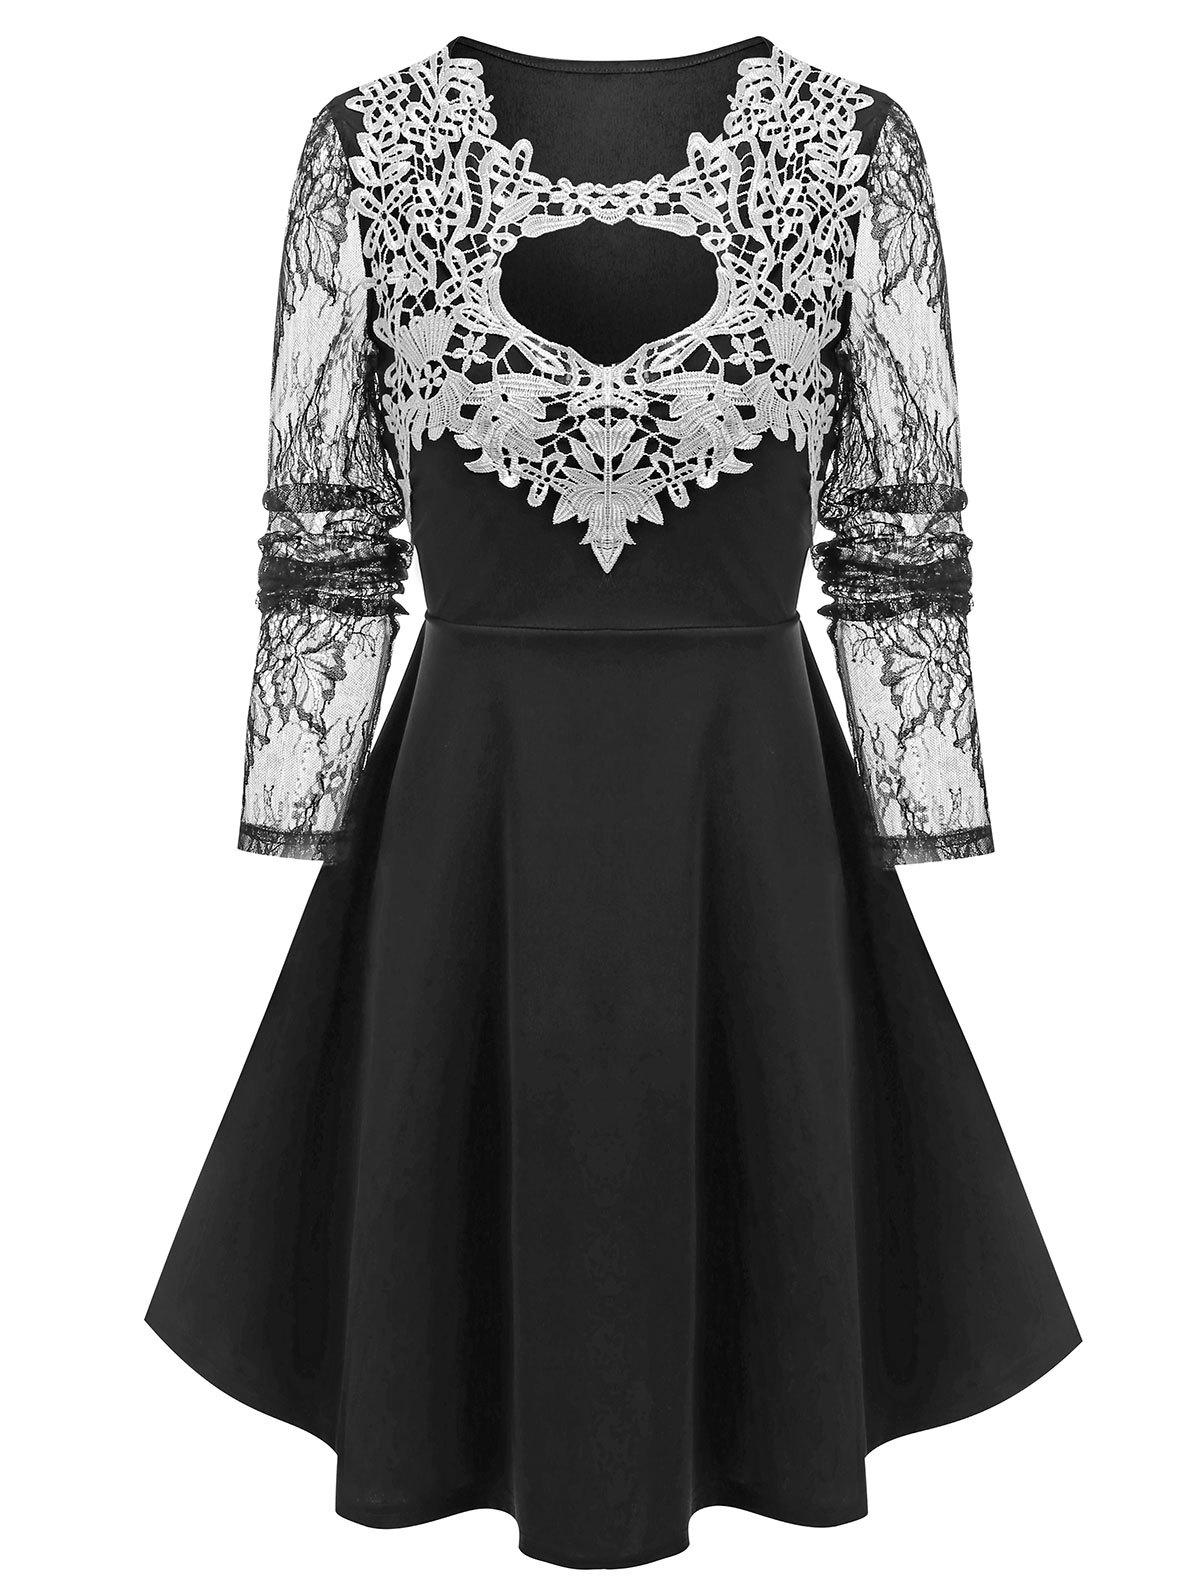 Lace Insert Cut Out Prom Dress - BLACK M